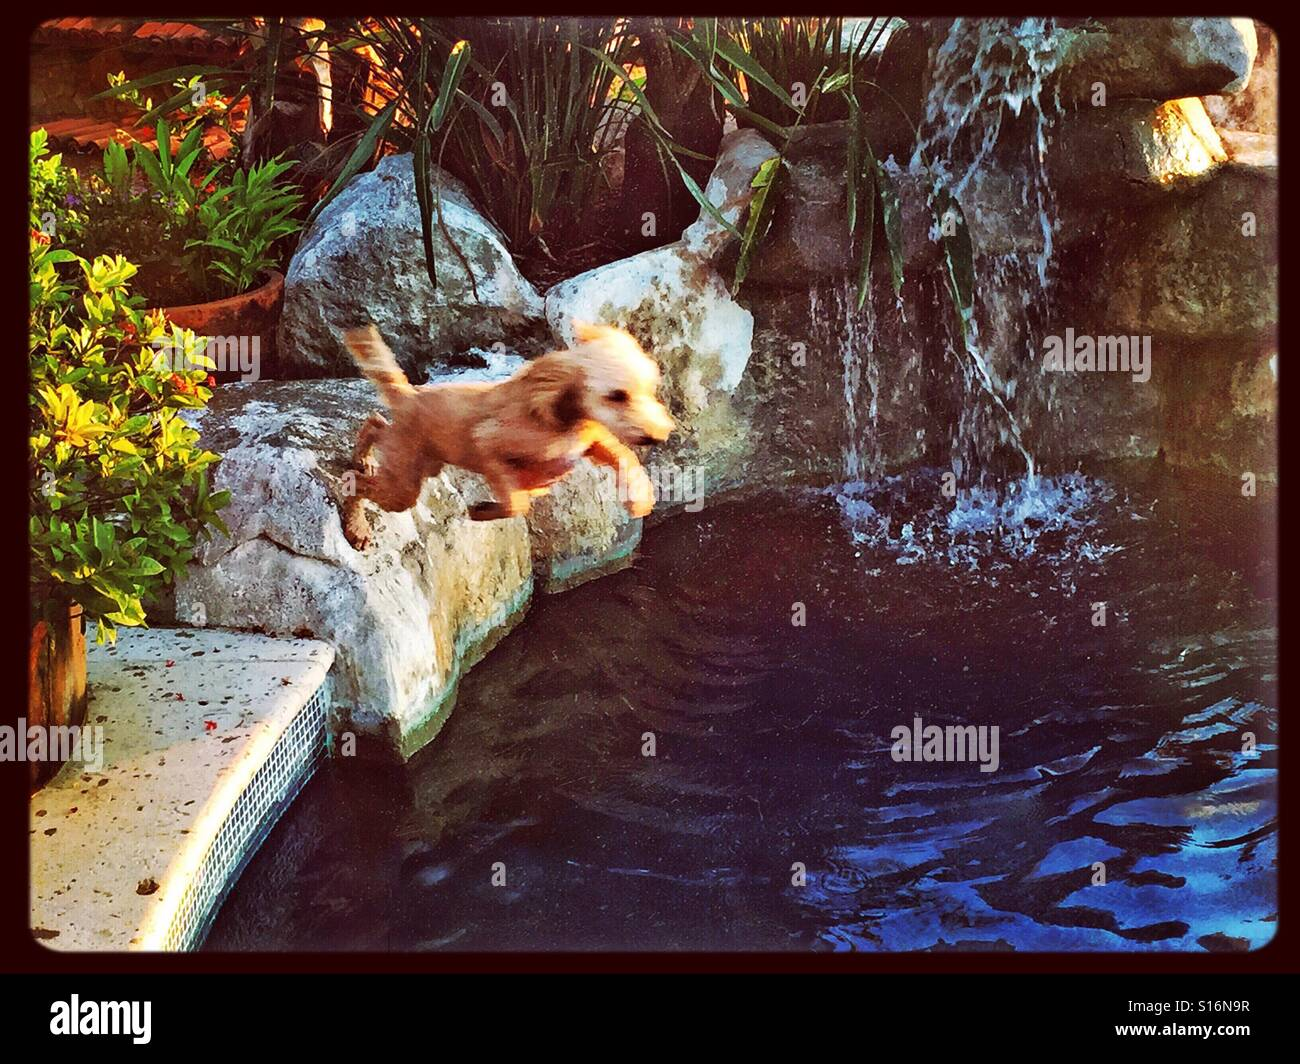 An action shot of a dog leaping into the refreshing water if a swimming pool with a waterfall. - Stock Image